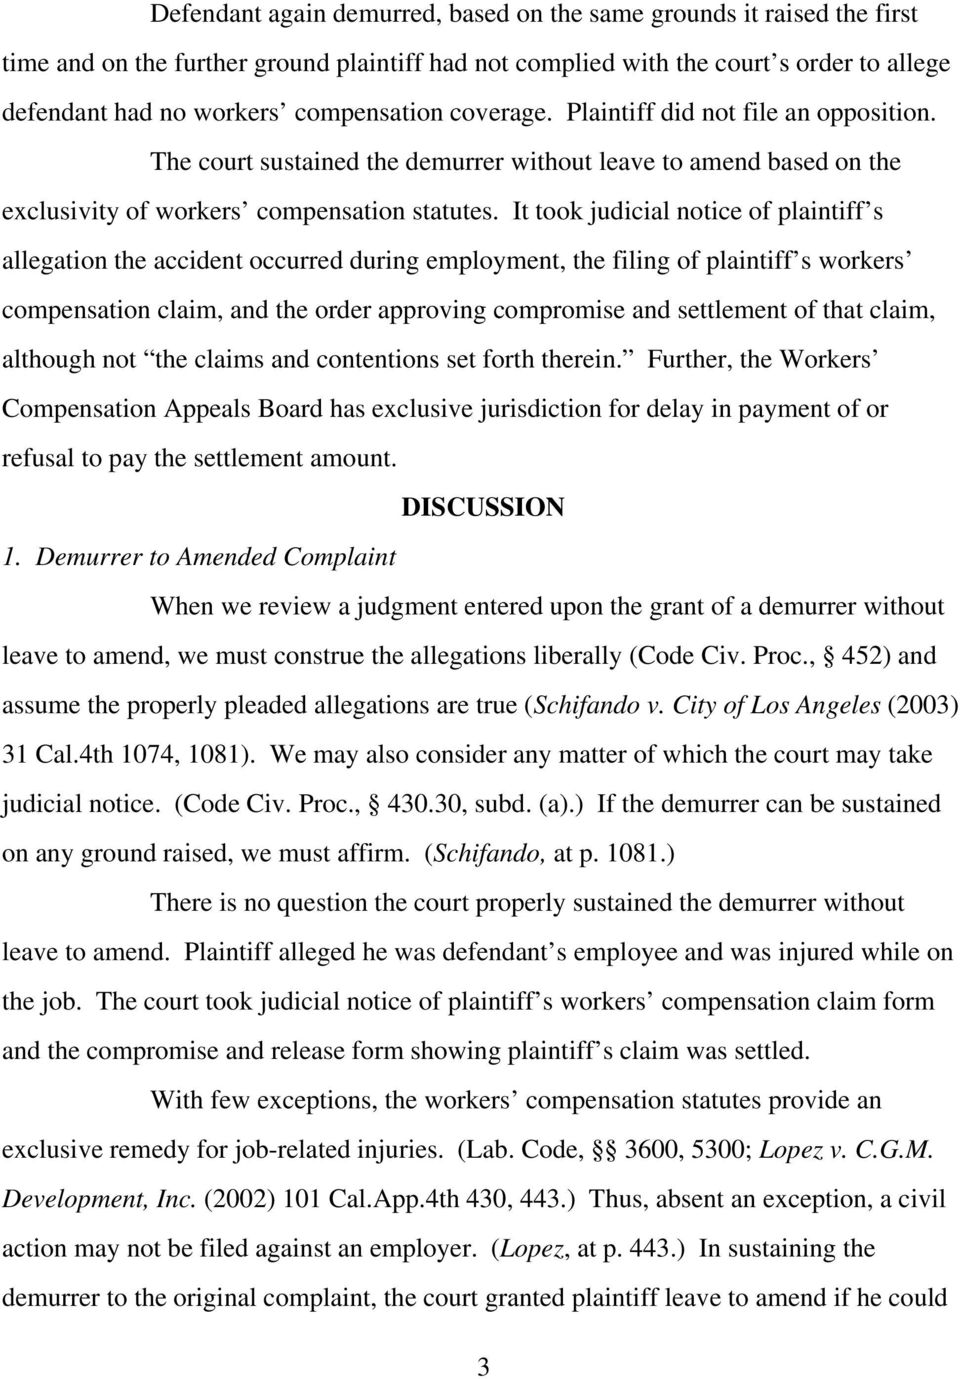 It took judicial notice of plaintiff s allegation the accident occurred during employment, the filing of plaintiff s workers compensation claim, and the order approving compromise and settlement of